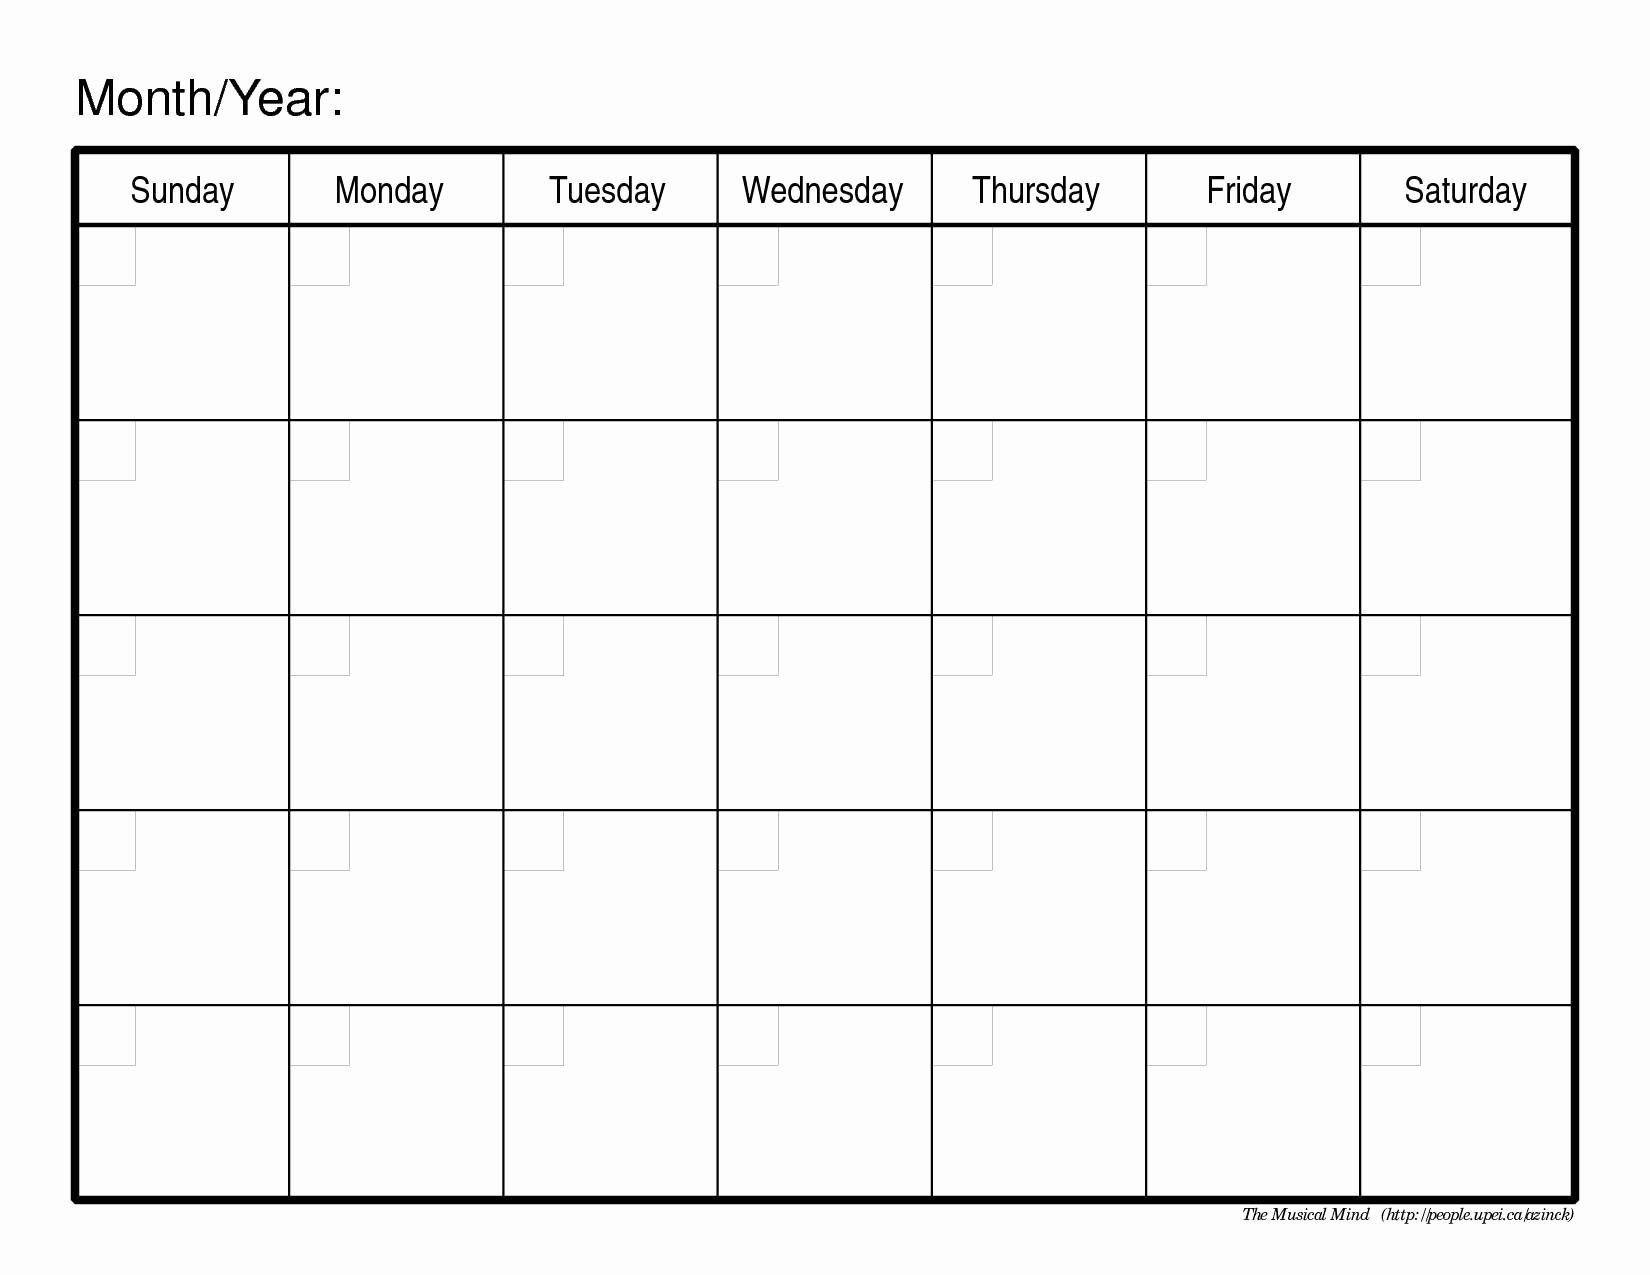 Printable Blank Weekly Calendar Template Http Calendartemplateku Com intended for Monthly Calendar Templates Monday To Friday